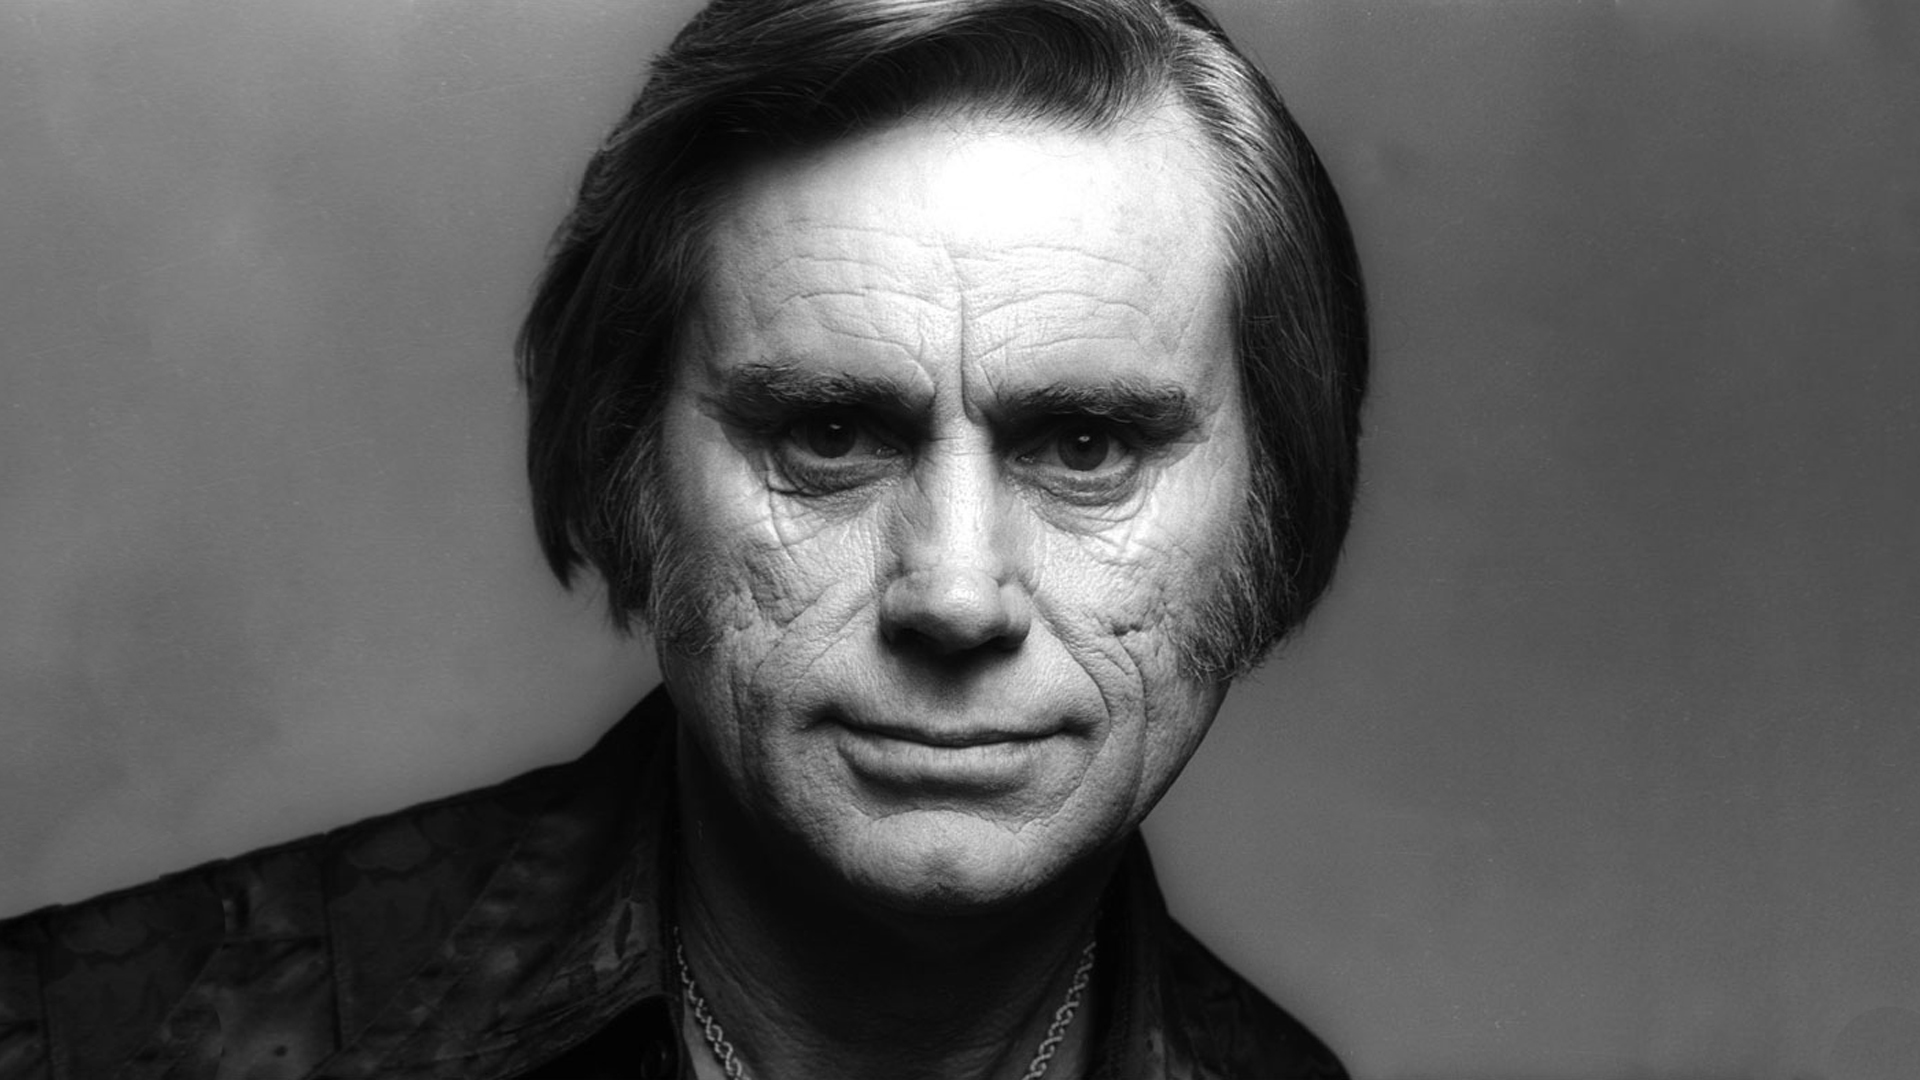 George jones alchetron the free social encyclopedia george jones 5 george jones hd wallpapers backgrounds wallpaper abyss hexwebz Image collections